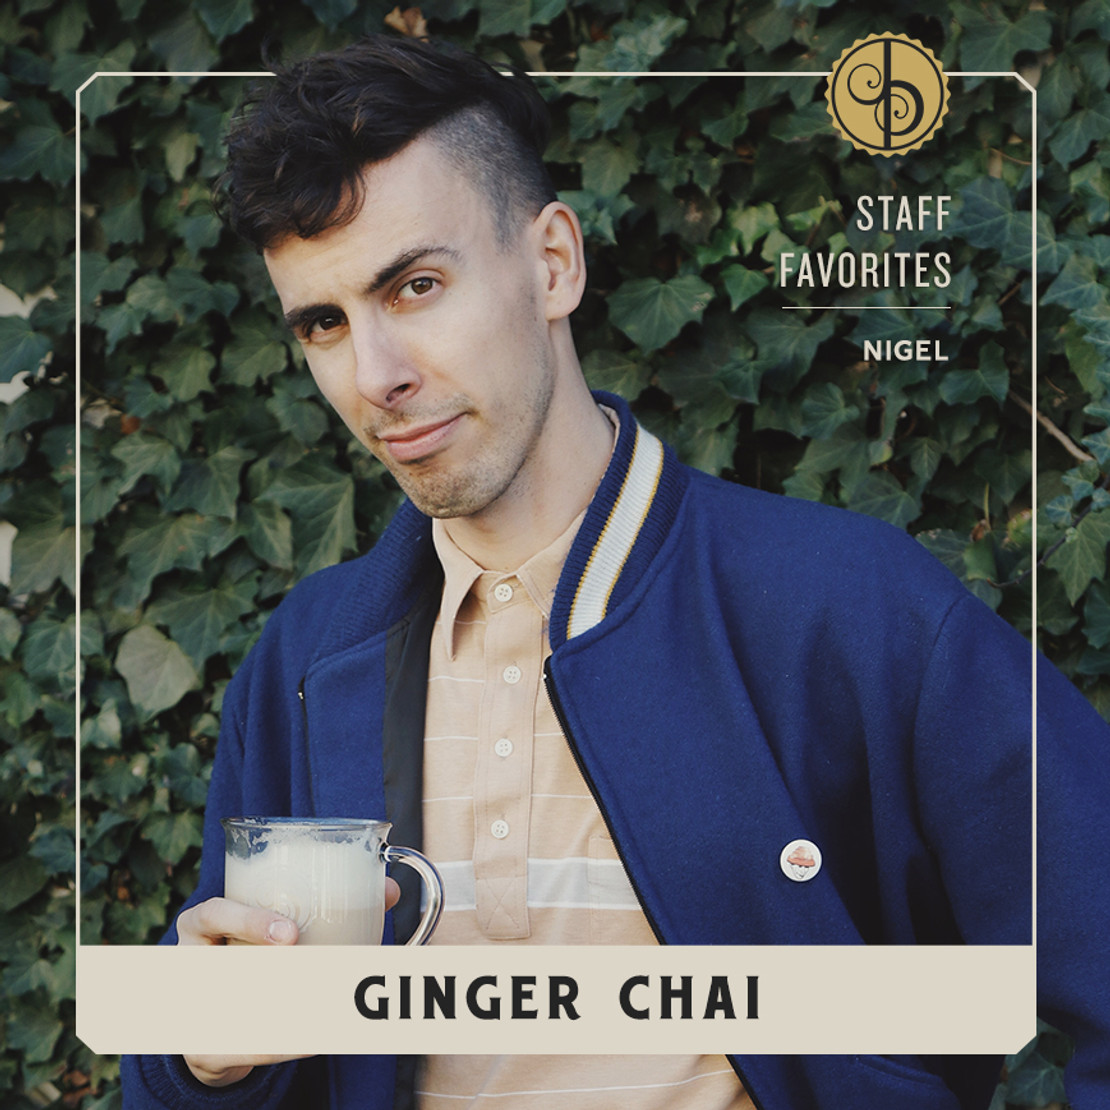 Staff Favorites: Nigel & Ginger Chai